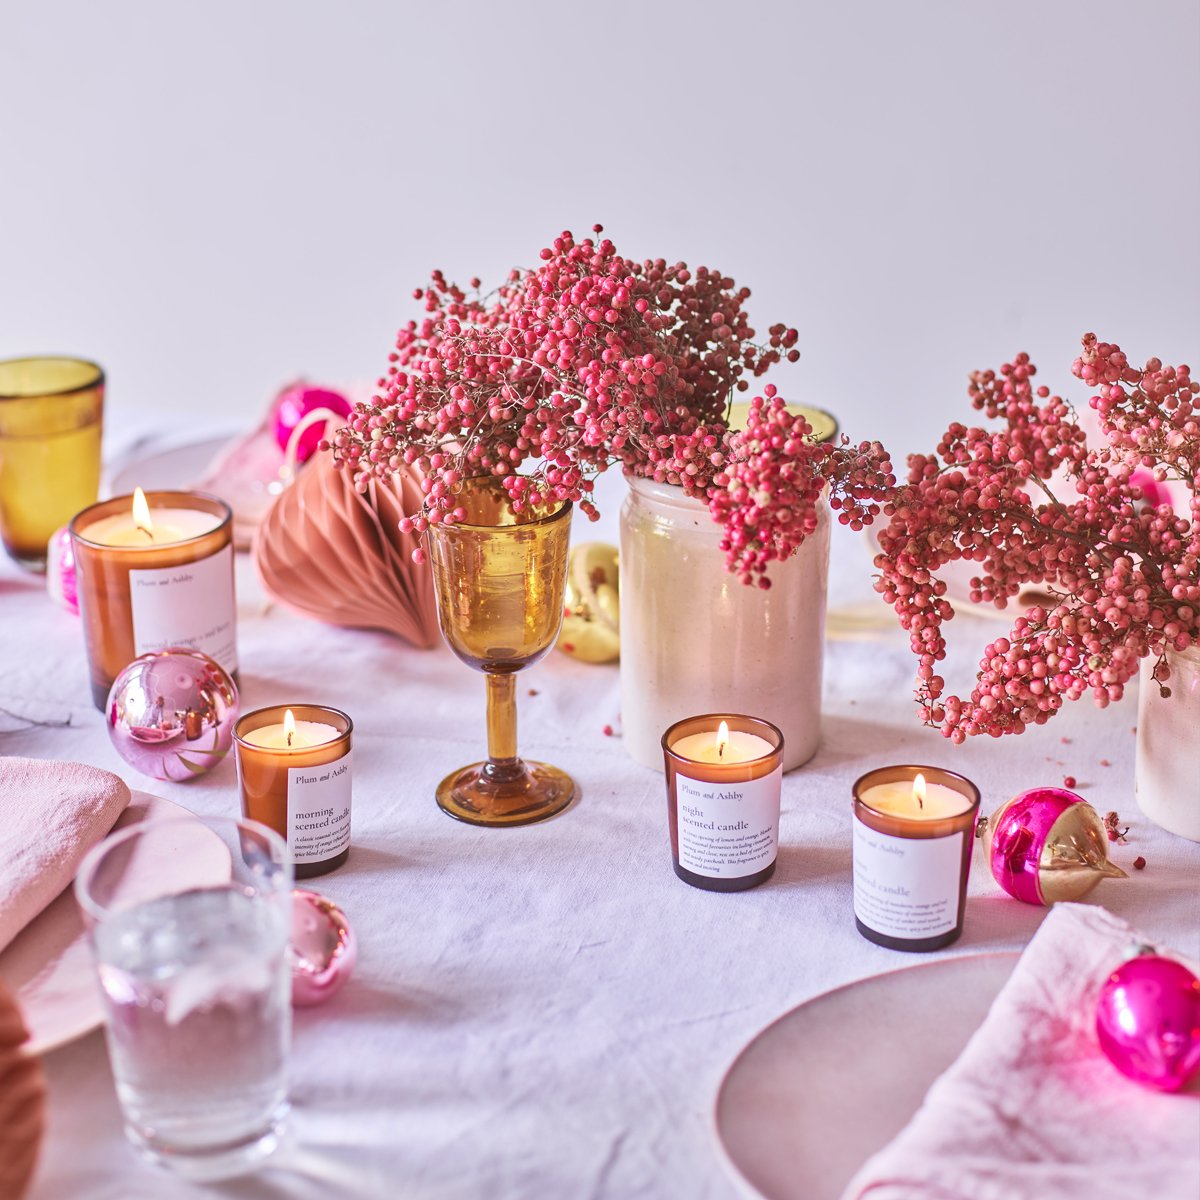 PINK PEPPER CORN AND NUTMEG CANDLE